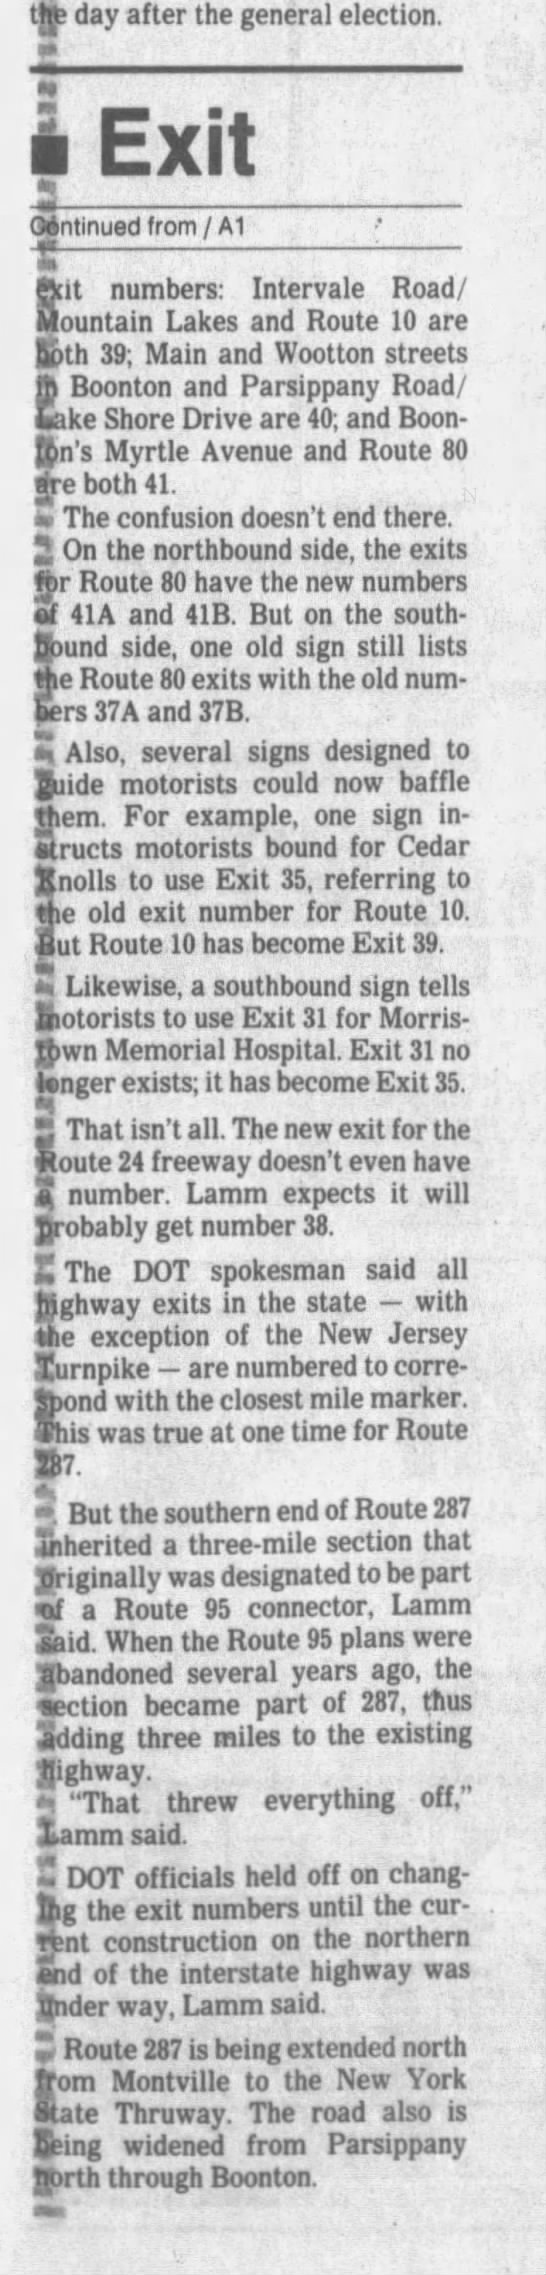 Interstate 287 exit numbers, December 17, 1992 part 2 -